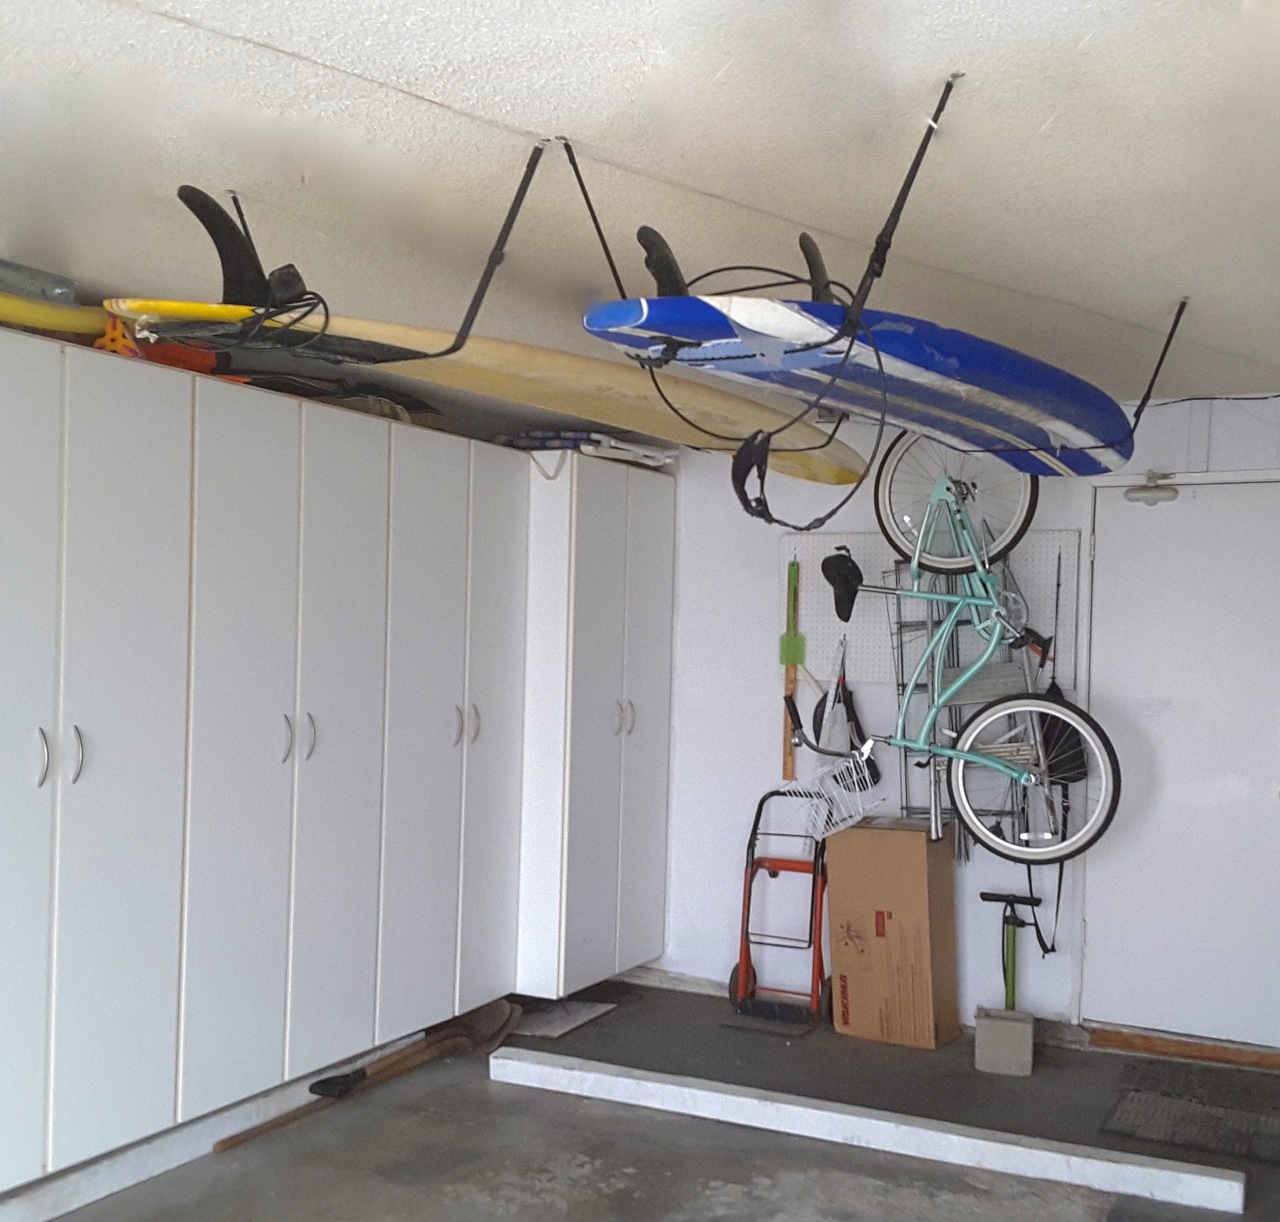 Charmant Garage Ceiling Surfboard Strap Rack